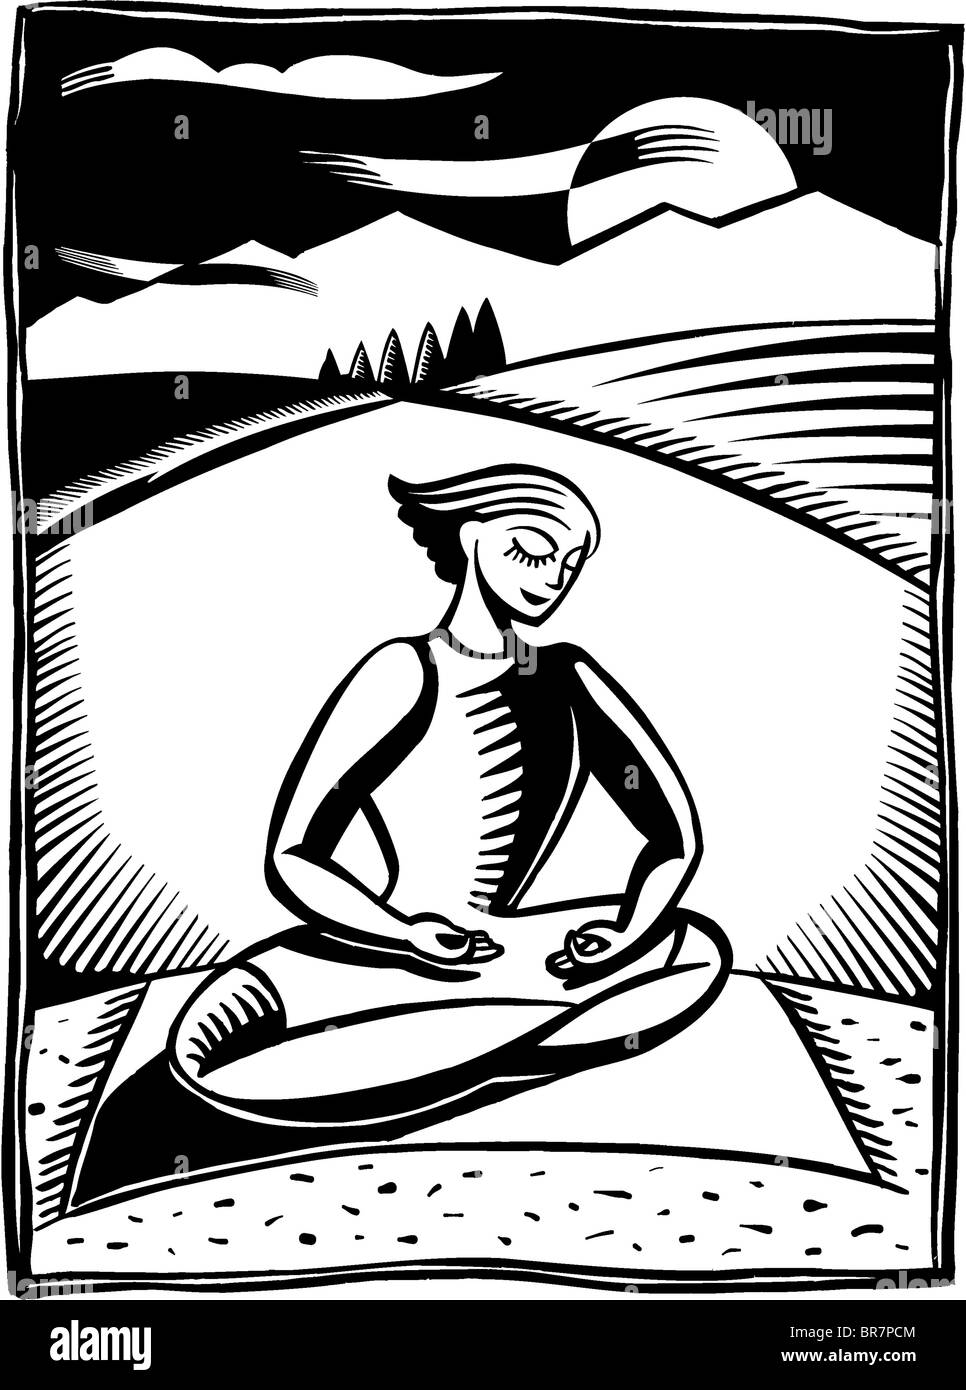 A black and white illustration of a woman meditating in lotus position - Stock Image